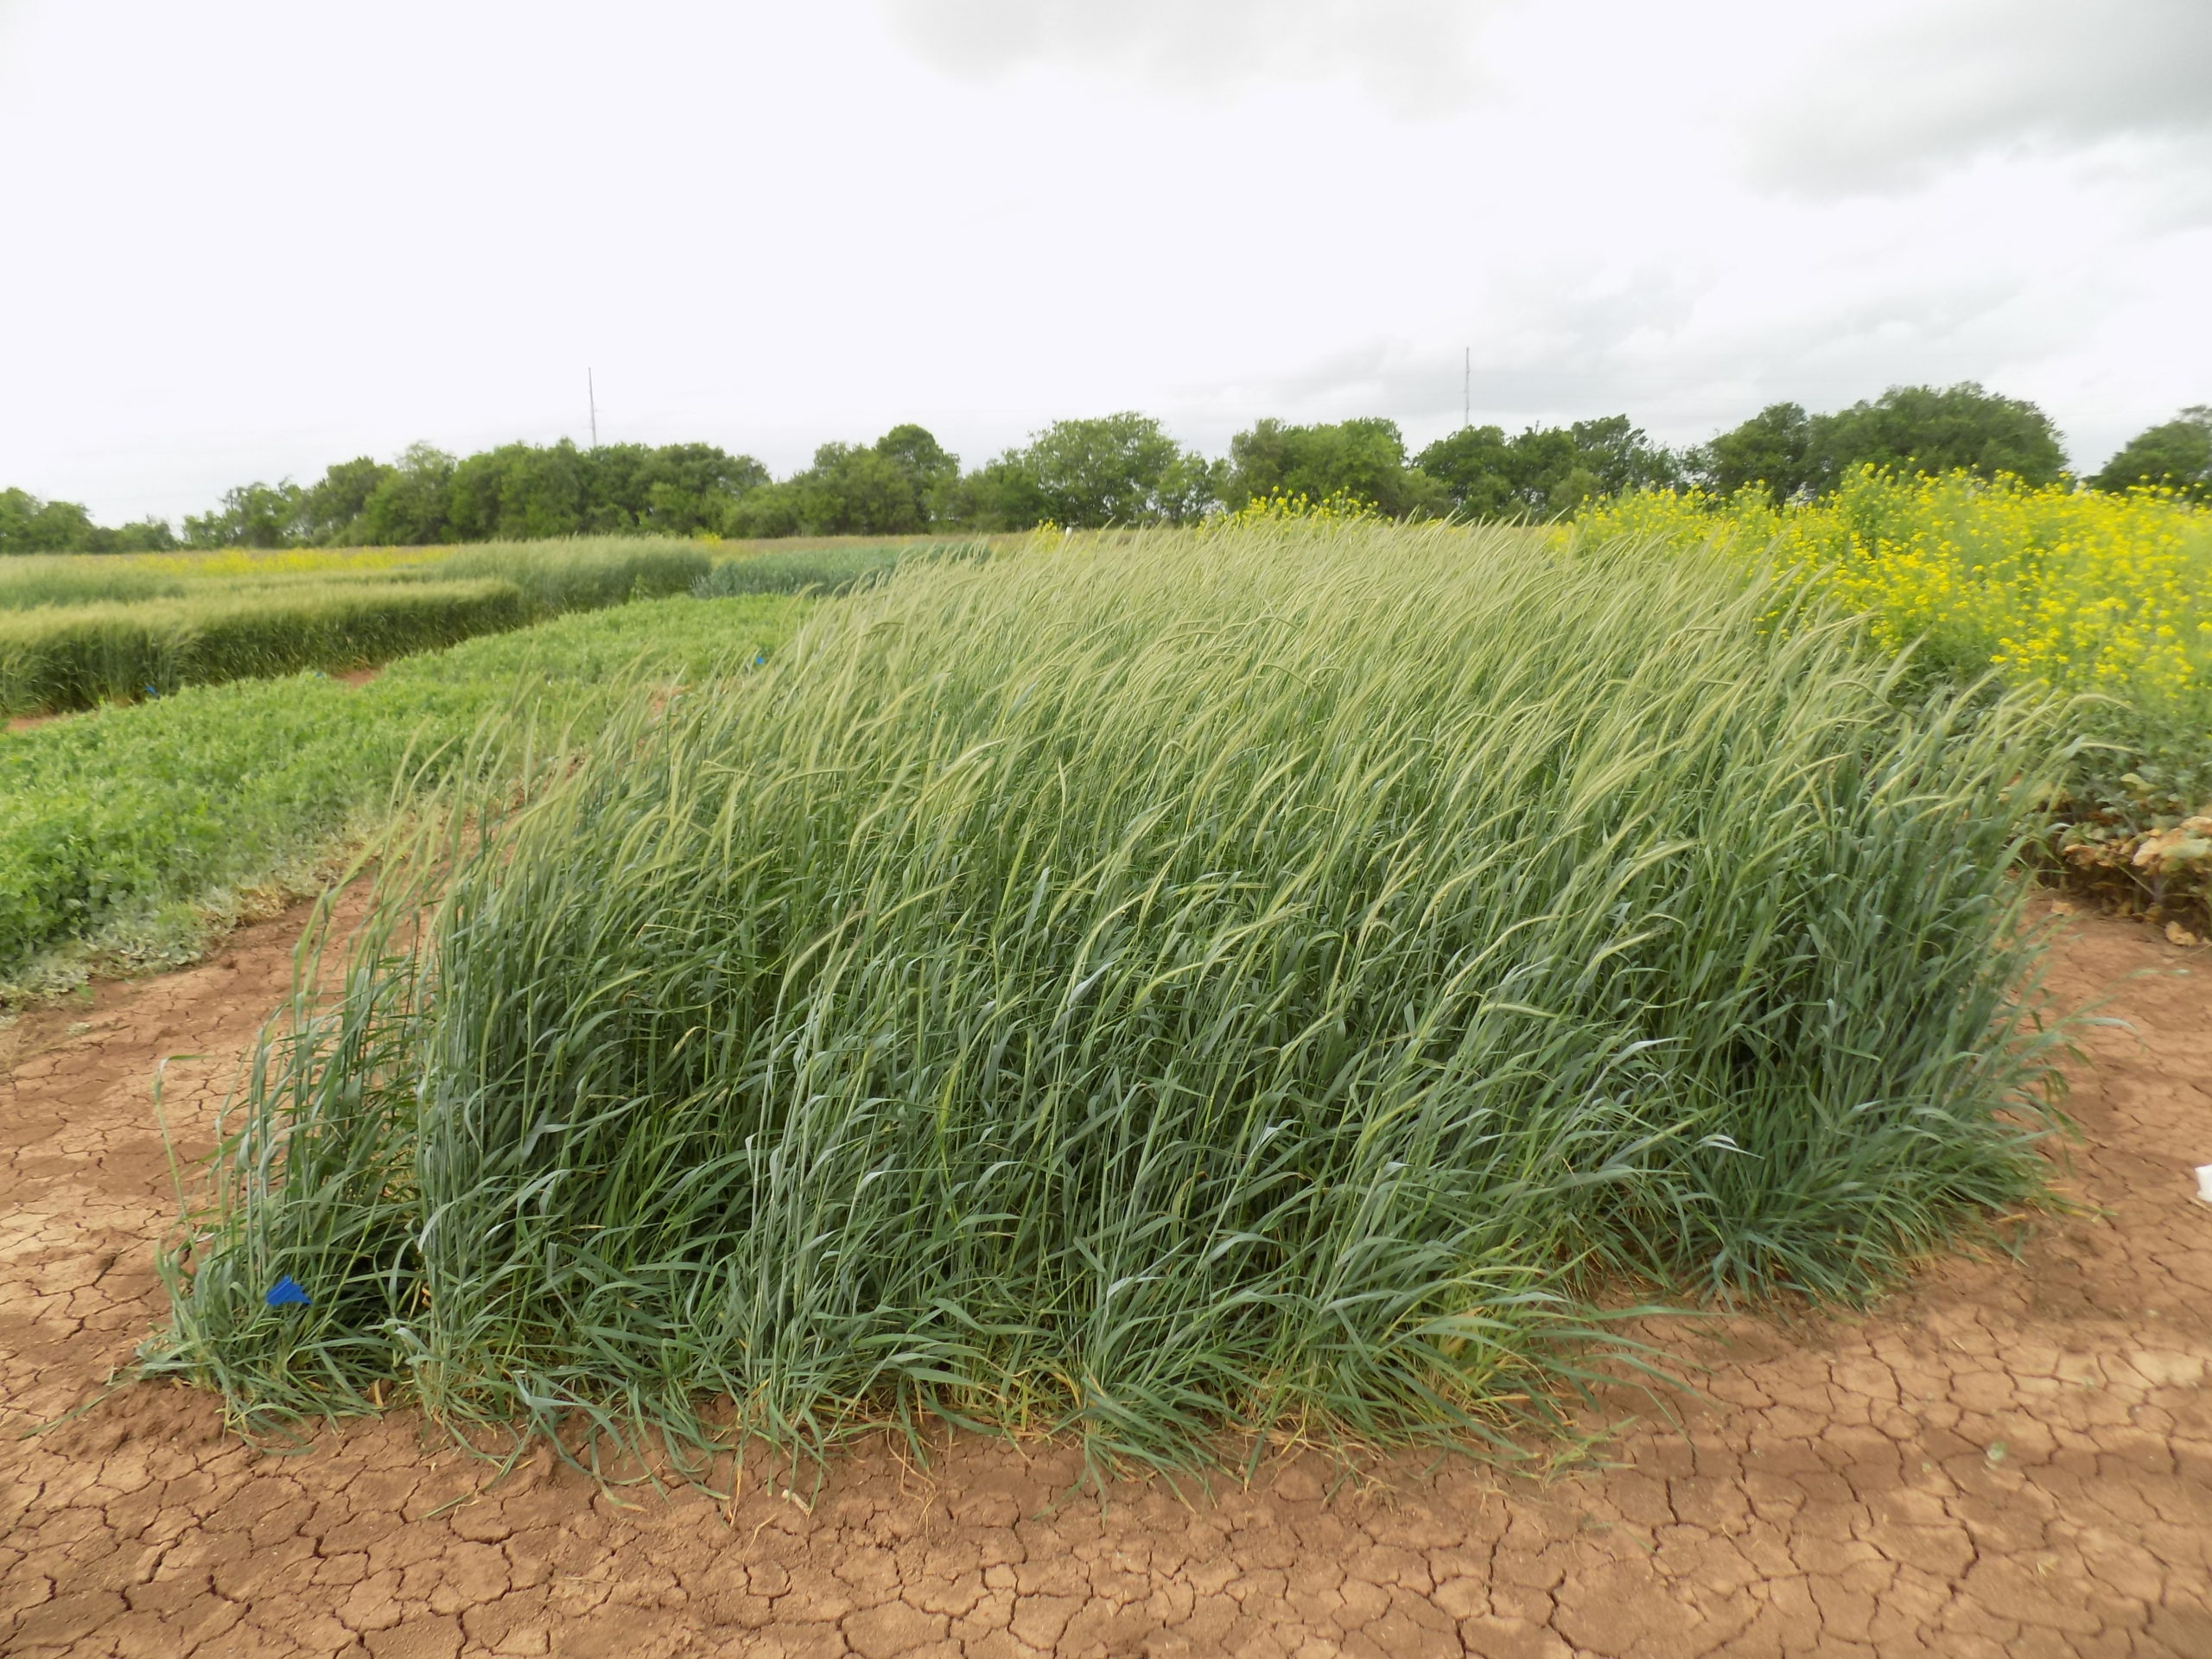 Triticale, a hybrid of wheat and rye, was selected to move on to the second phase of the research.